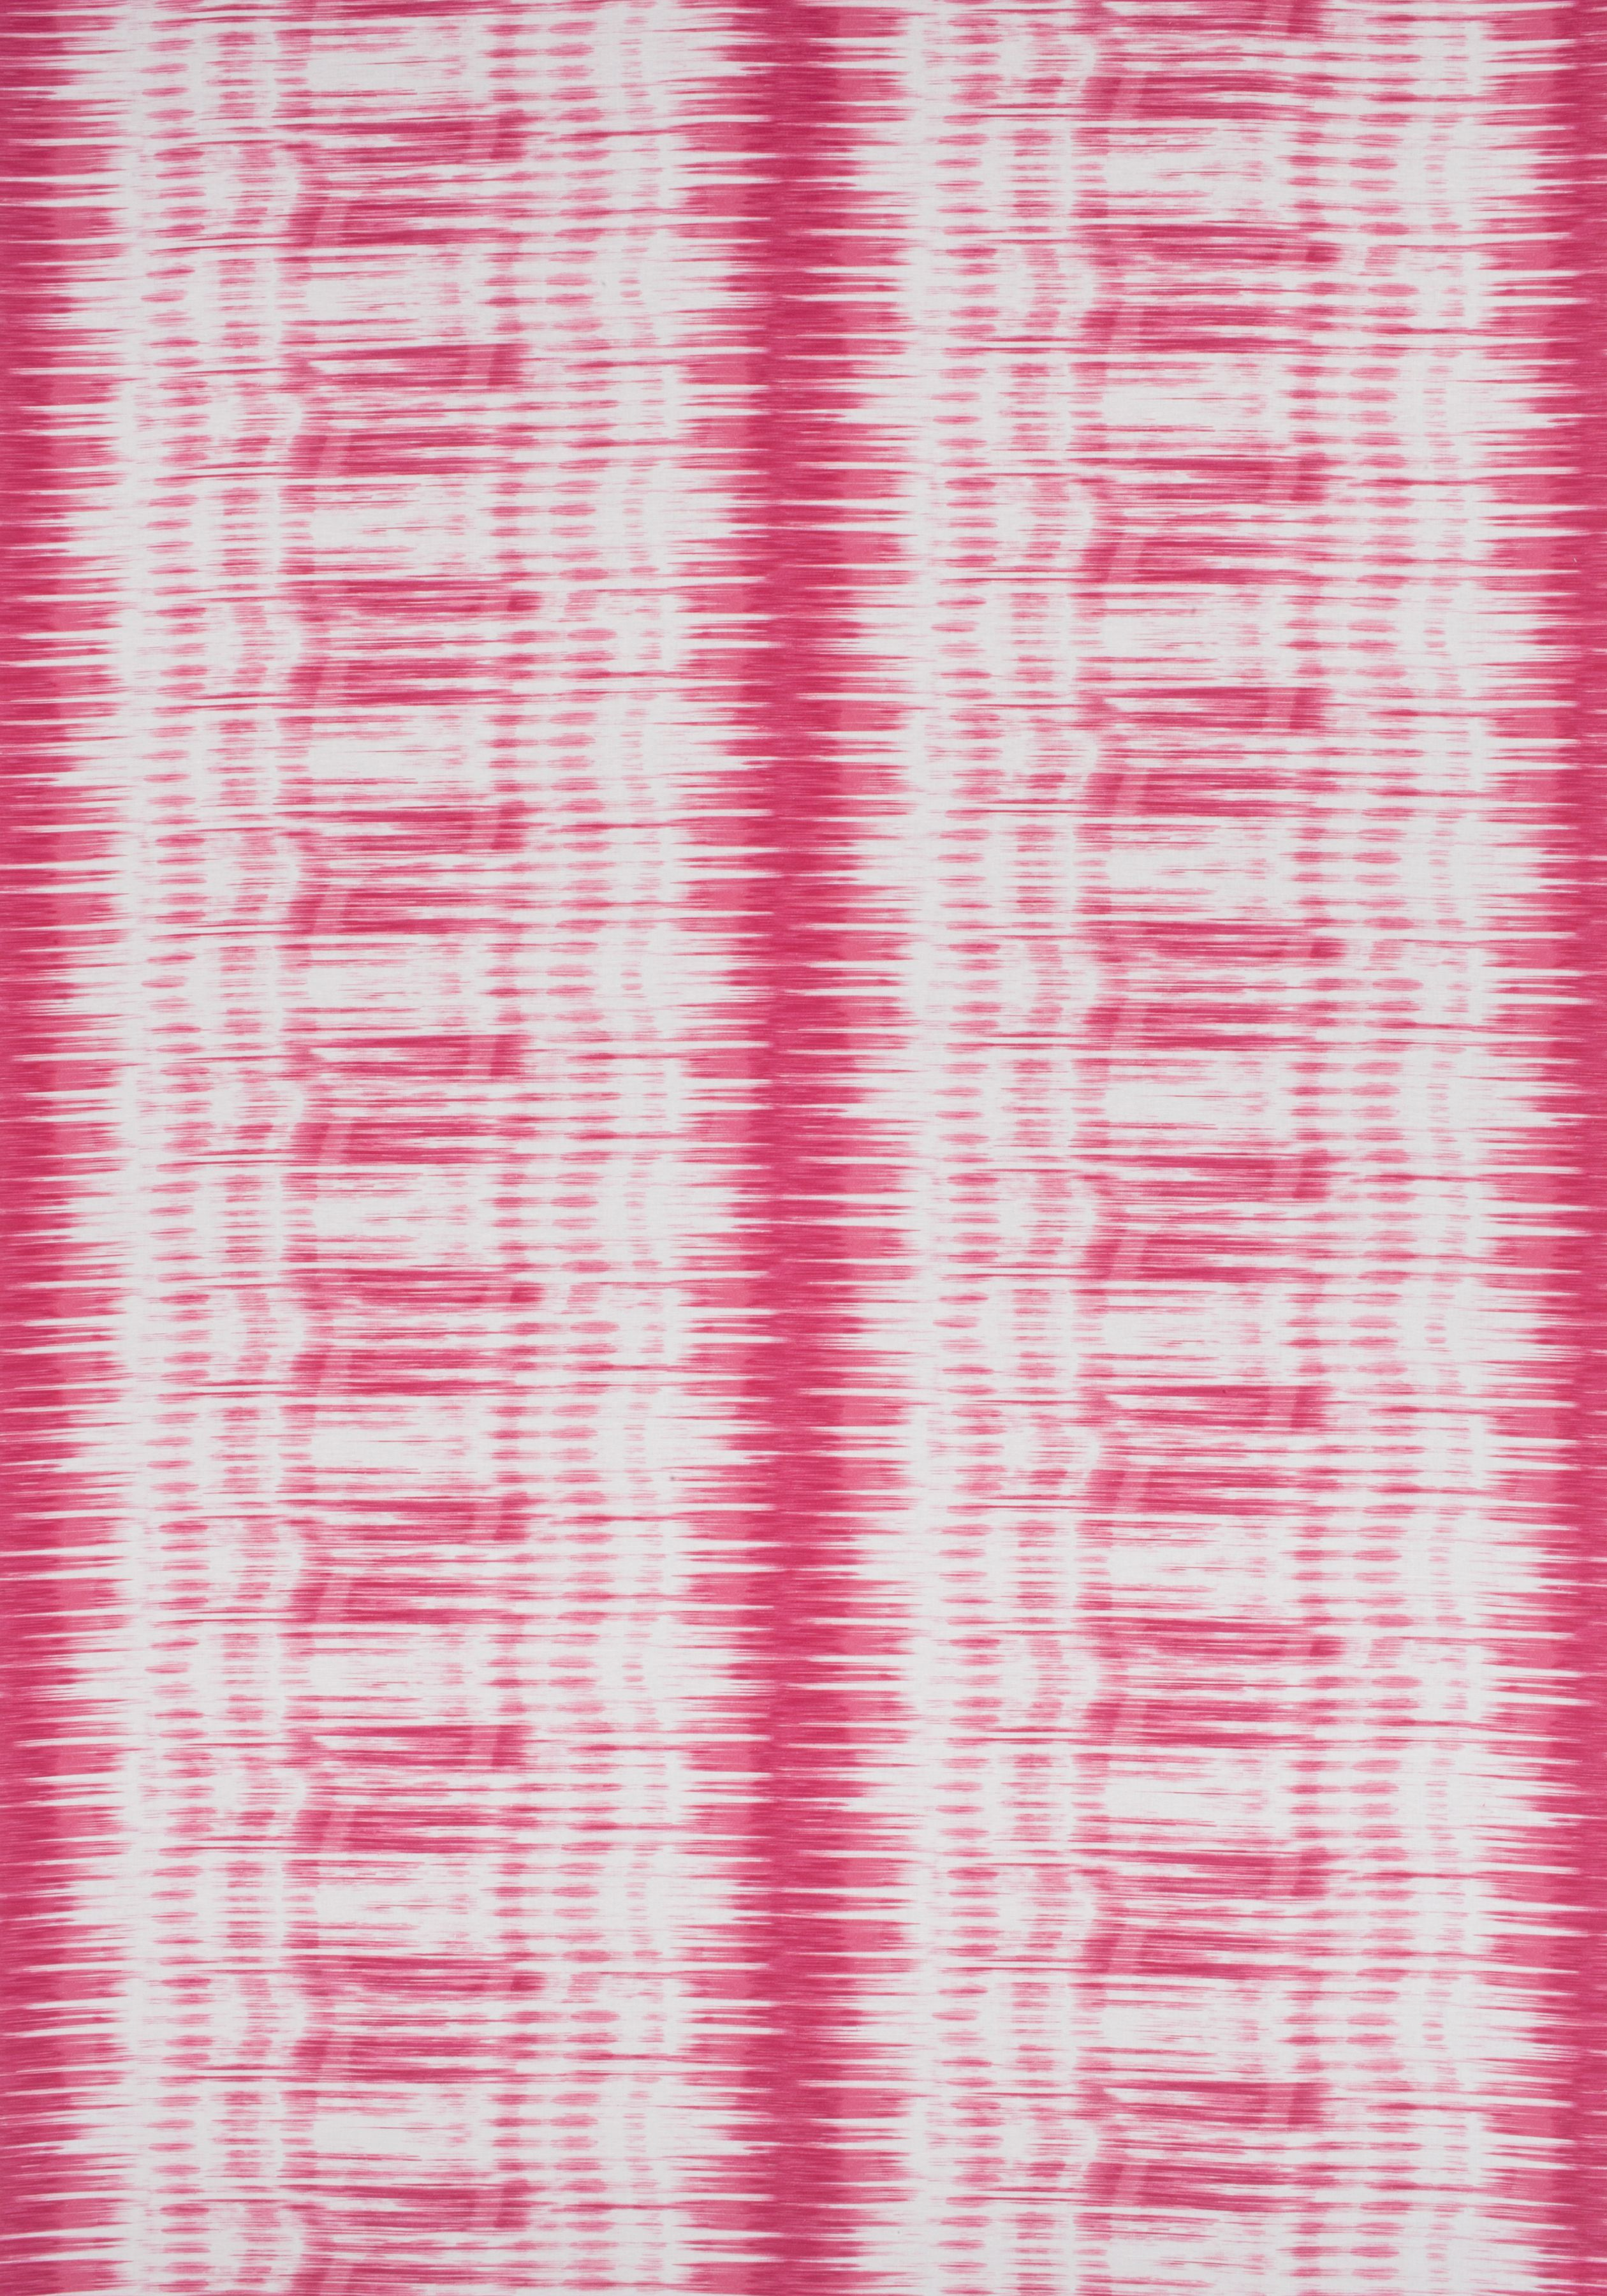 IKAT STRIPE Pink F Collection Trade Routes from Thibaut